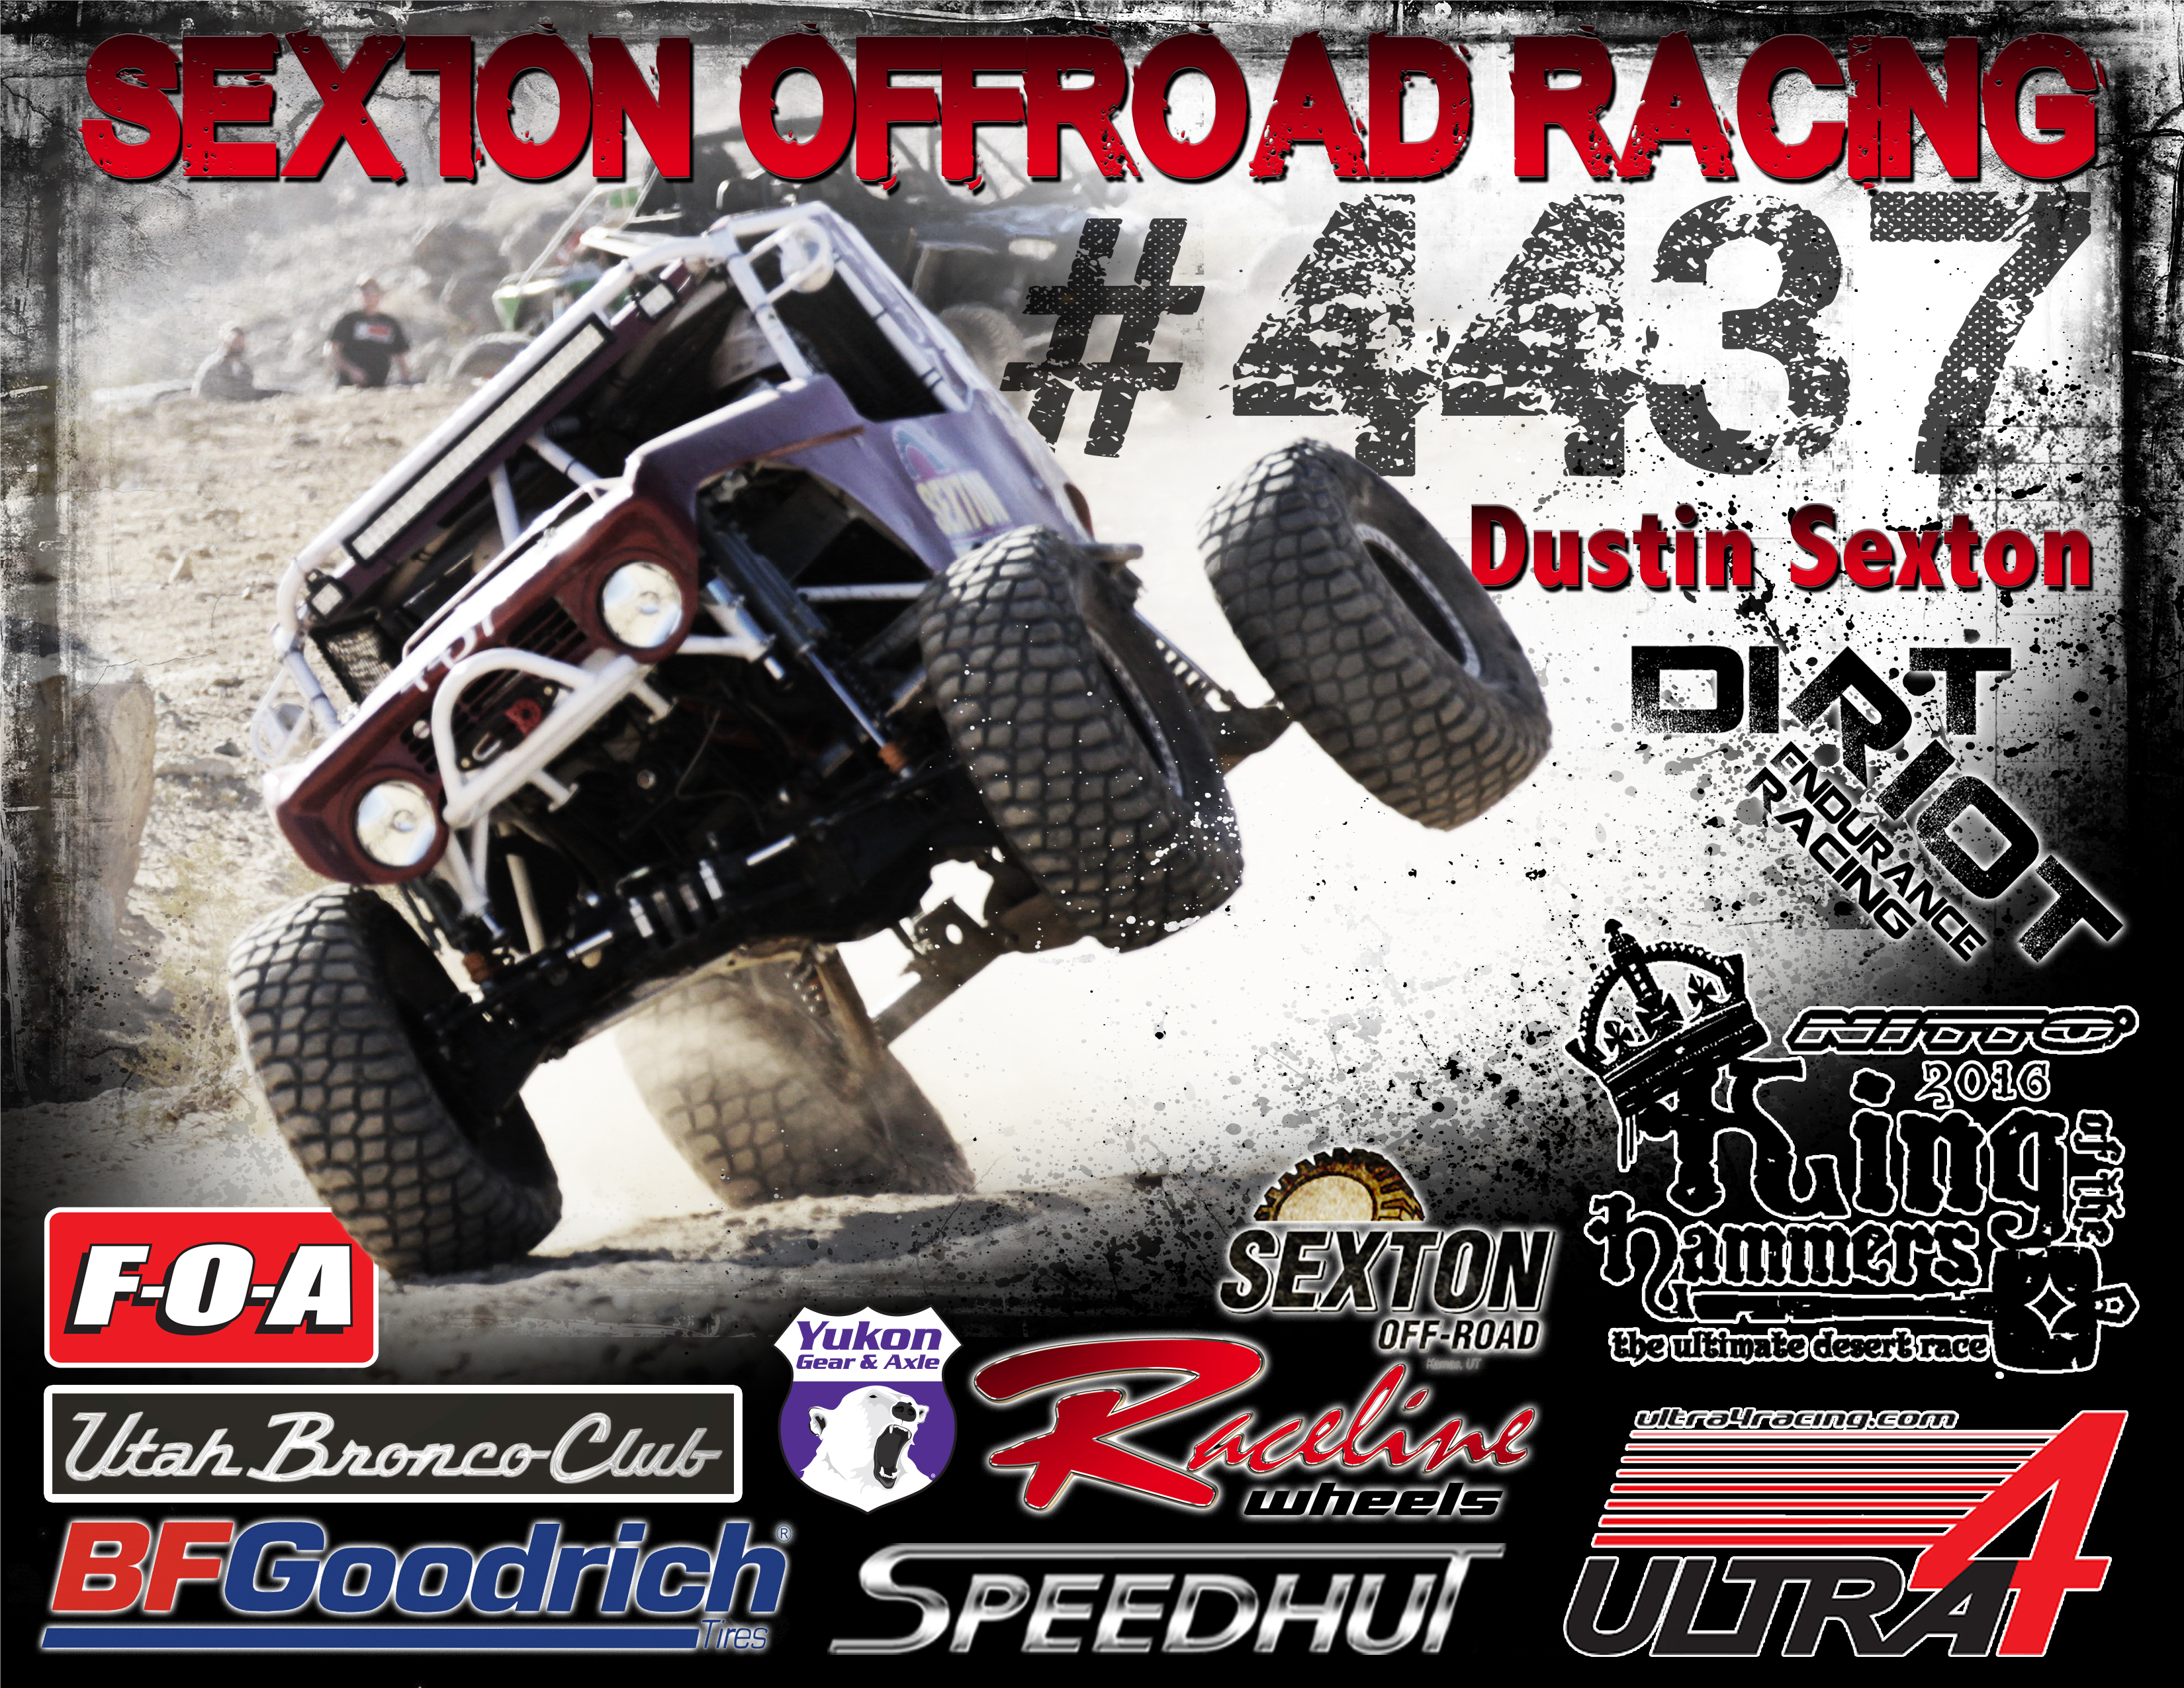 Sexton Offroad Racing Poster